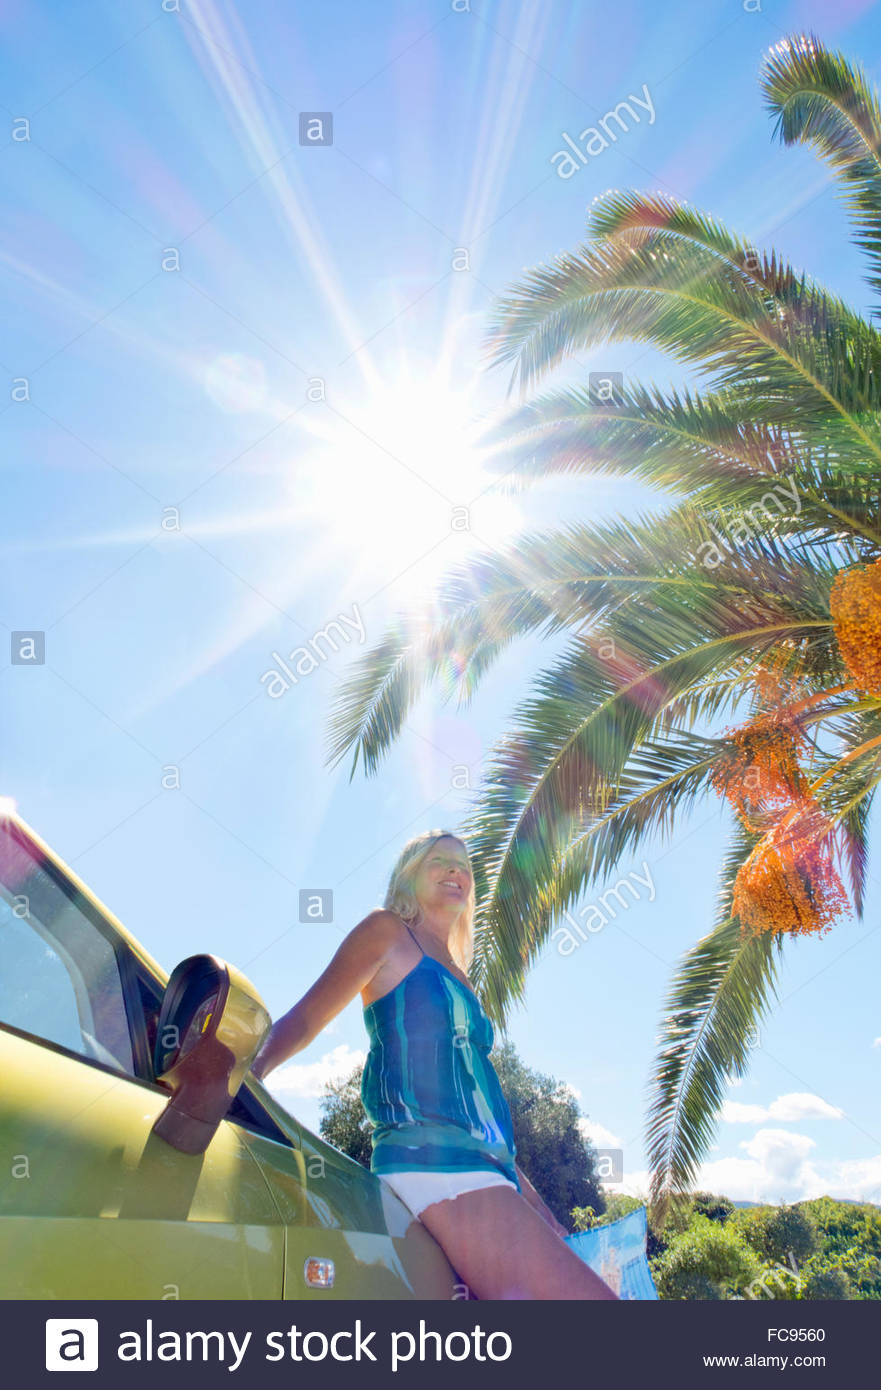 Smiling woman leaning on car under palm tree and sun in blue sky - Stock Image